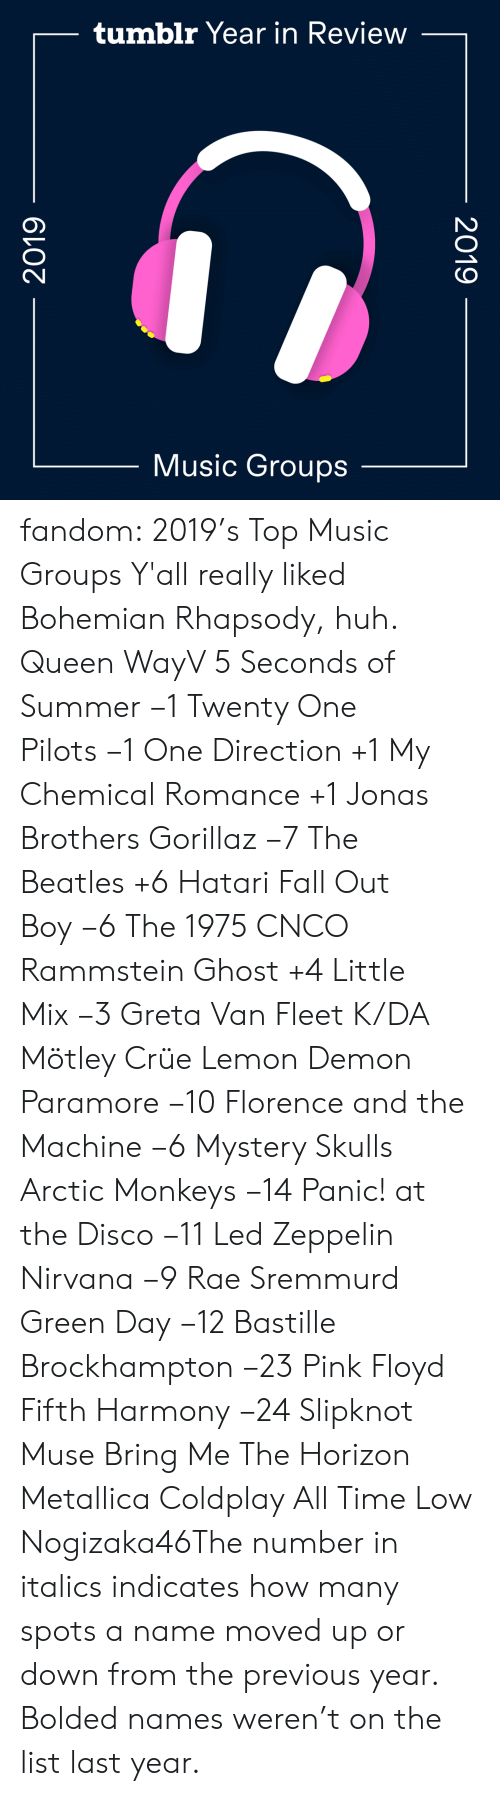 Pink Floyd: tumblr Year in Review  Music Groups  2019  2019 fandom:  2019's Top Music Groups  Y'all really liked Bohemian Rhapsody, huh.  Queen  WayV  5 Seconds of Summer −1  Twenty One Pilots −1  One Direction +1  My Chemical Romance +1  Jonas Brothers  Gorillaz −7  The Beatles +6  Hatari  Fall Out Boy −6  The 1975  CNCO  Rammstein  Ghost +4  Little Mix −3  Greta Van Fleet  K/DA  Mötley Crüe  Lemon Demon  Paramore −10  Florence and the Machine −6  Mystery Skulls  Arctic Monkeys −14  Panic! at the Disco −11  Led Zeppelin   Nirvana −9  Rae Sremmurd  Green Day −12  Bastille  Brockhampton −23  Pink Floyd  Fifth Harmony −24  Slipknot  Muse  Bring Me The Horizon  Metallica  Coldplay  All Time Low  Nogizaka46The number in italics indicates how many spots a name moved up or down from the previous year. Bolded names weren't on the list last year.